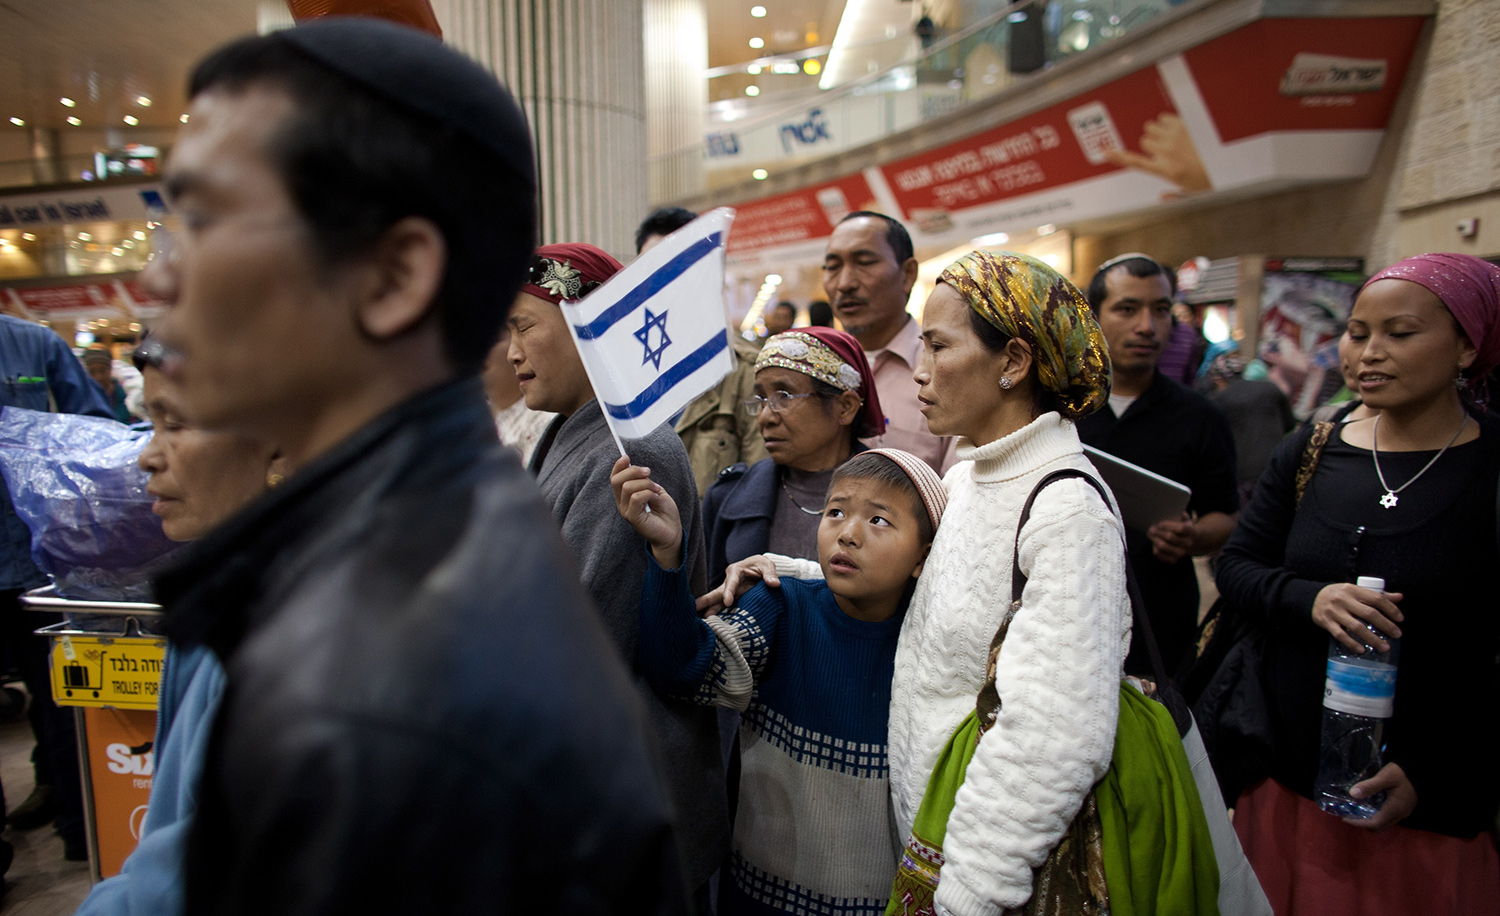 Members of the B'nei Menashe community reunite with relatives at Israel's Ben-Gurion airport on December 24, 2012. Uriel Sinai/Getty Images.